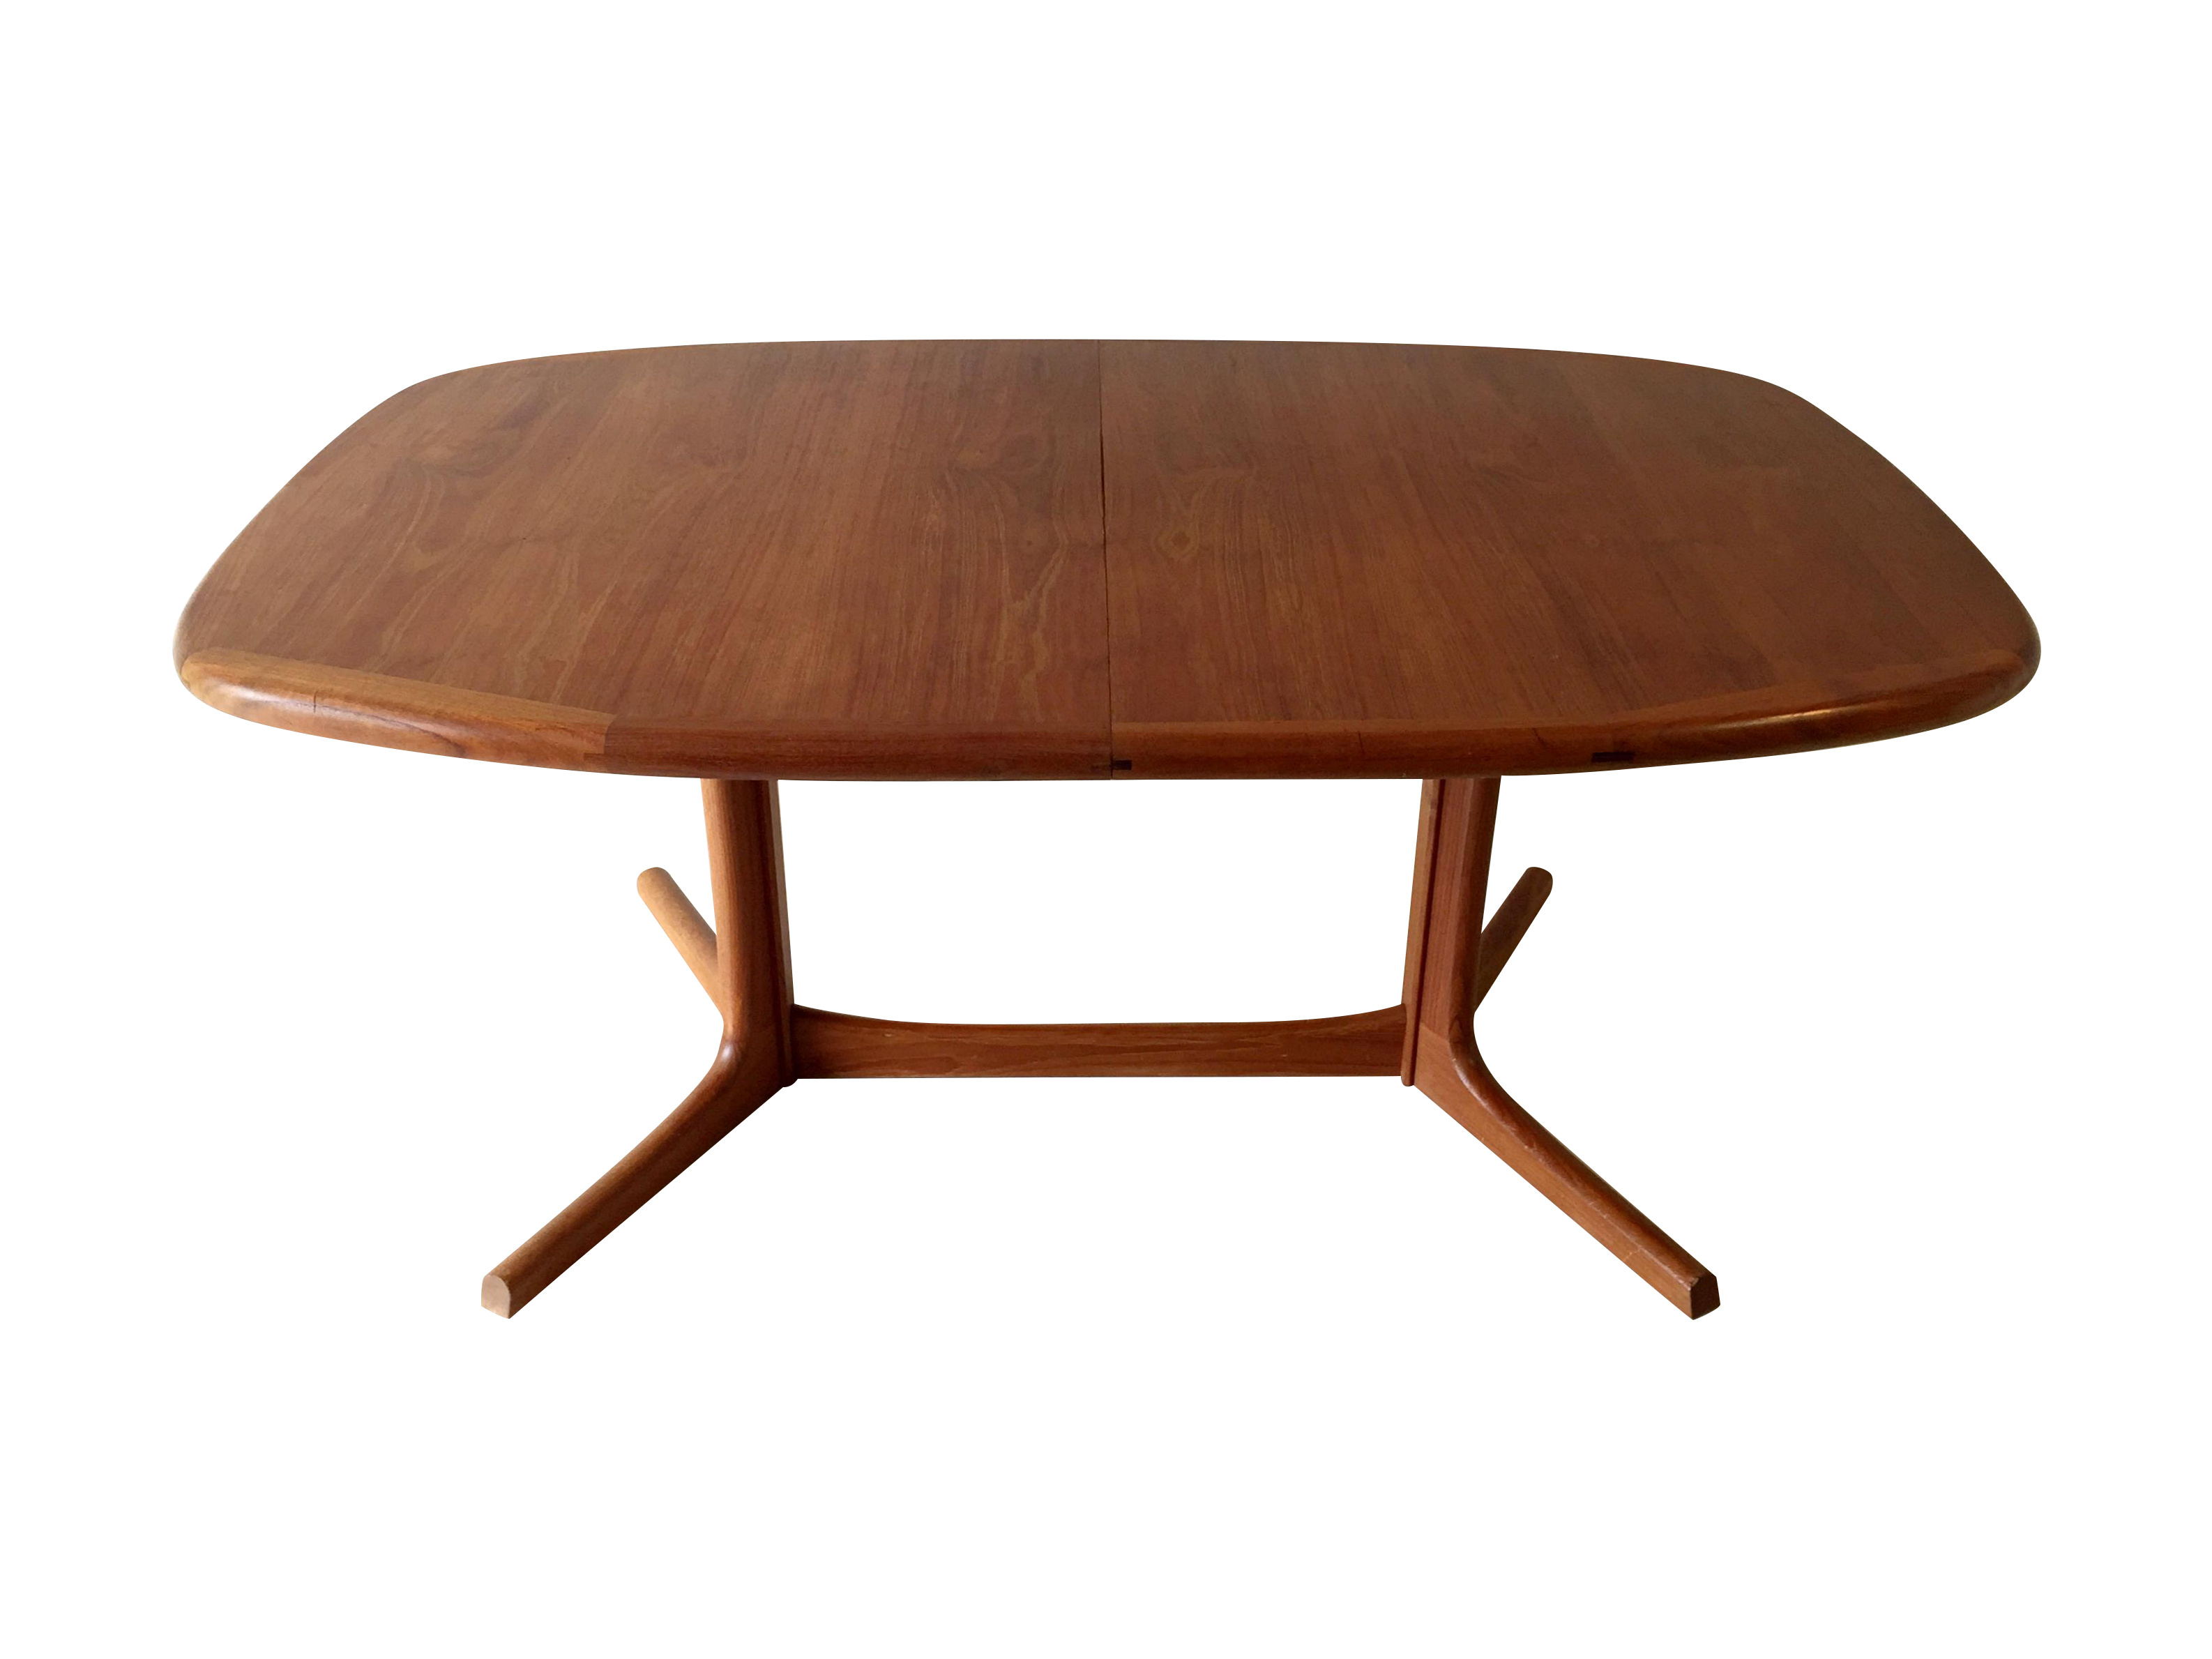 Vintage Danish Dyrlund Teak Dining Table